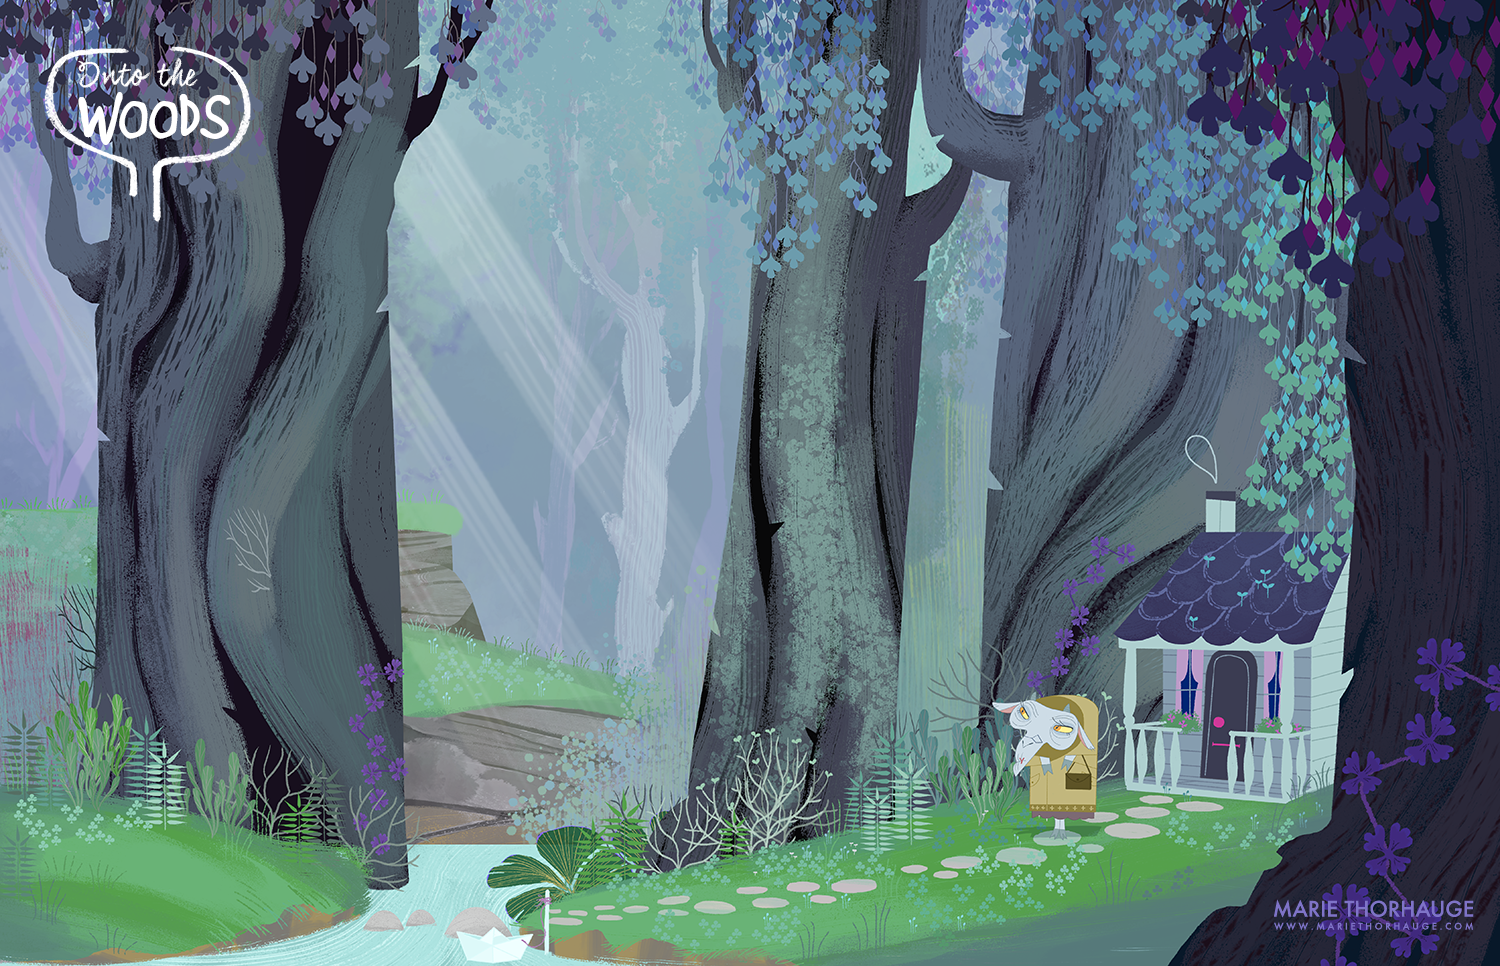 2016_Marie-Thorhauge_Into-the-woods.png